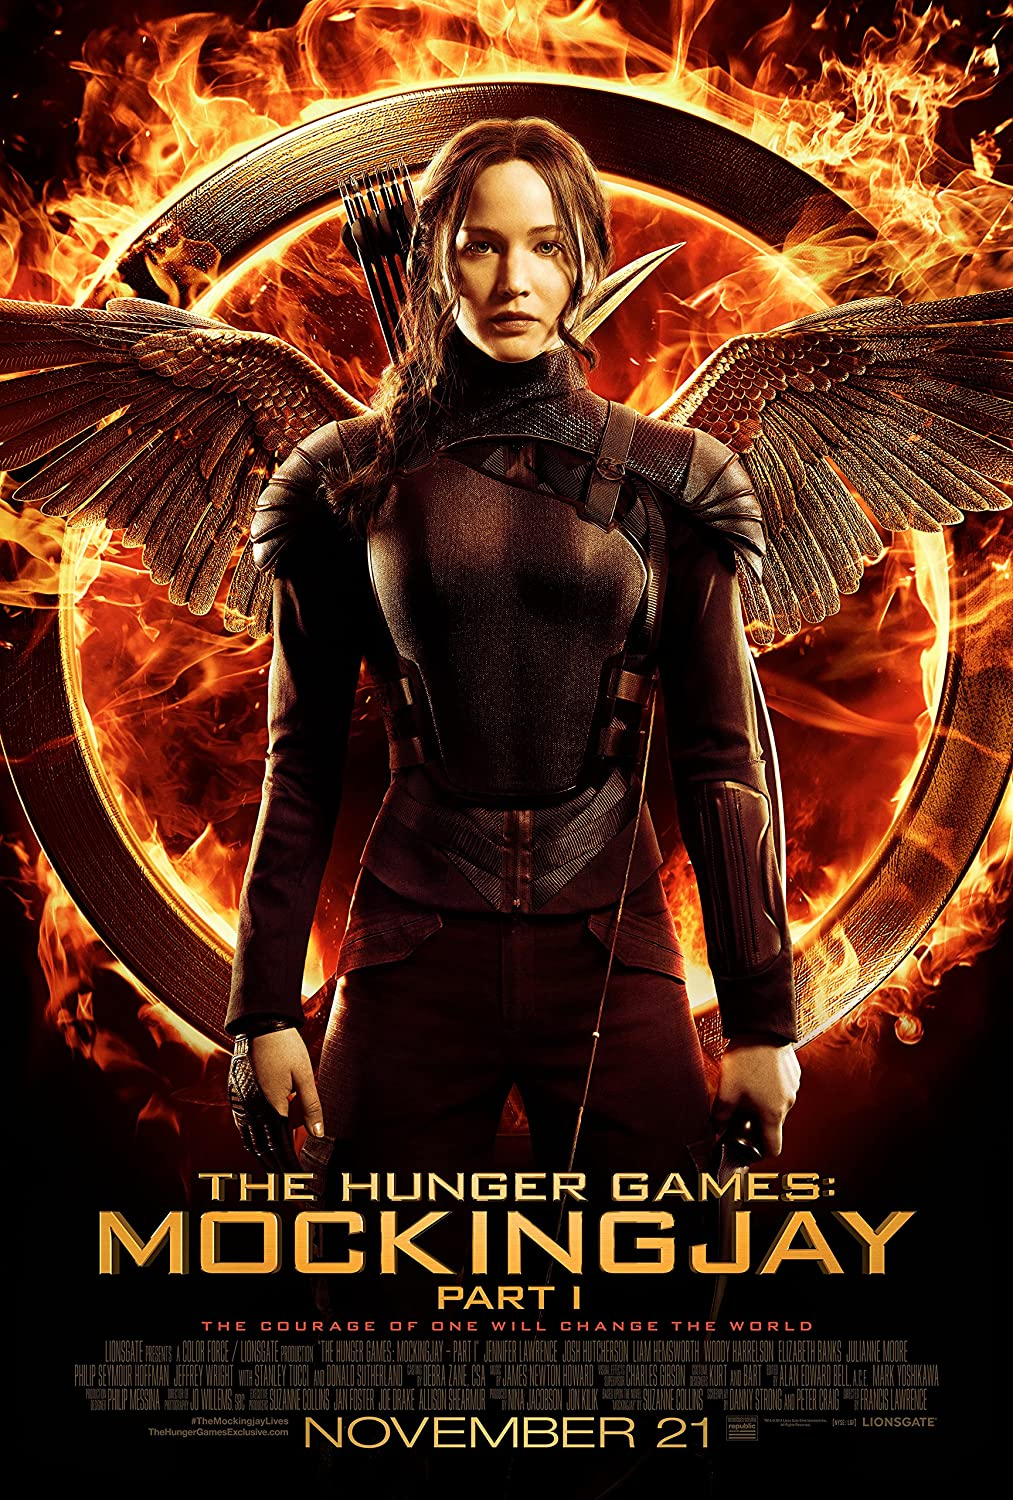 The Hunger Games: Mockingjay Part 1 -Movie Poster, 24 x 36 Inches - Glossy Photo Paper (Thick 8 Mil) - Jennifer Lawrence, Josh Hutcherson, Liam Hemsworth